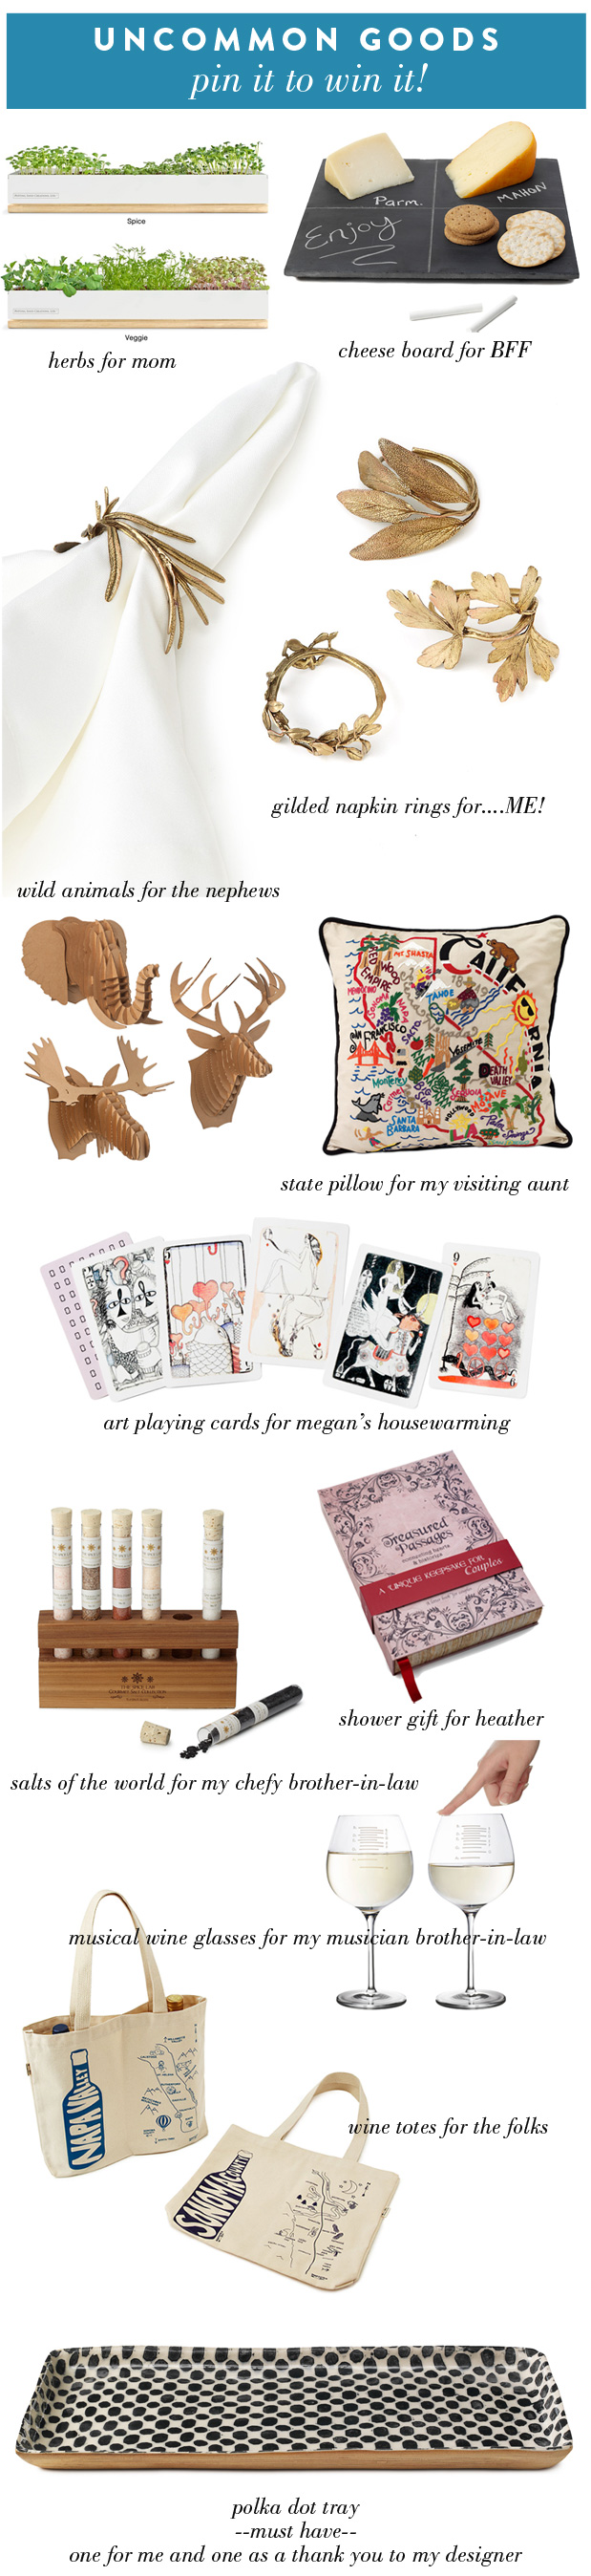 Wedding Blog Uncommon Goods: Pin it to Win it!